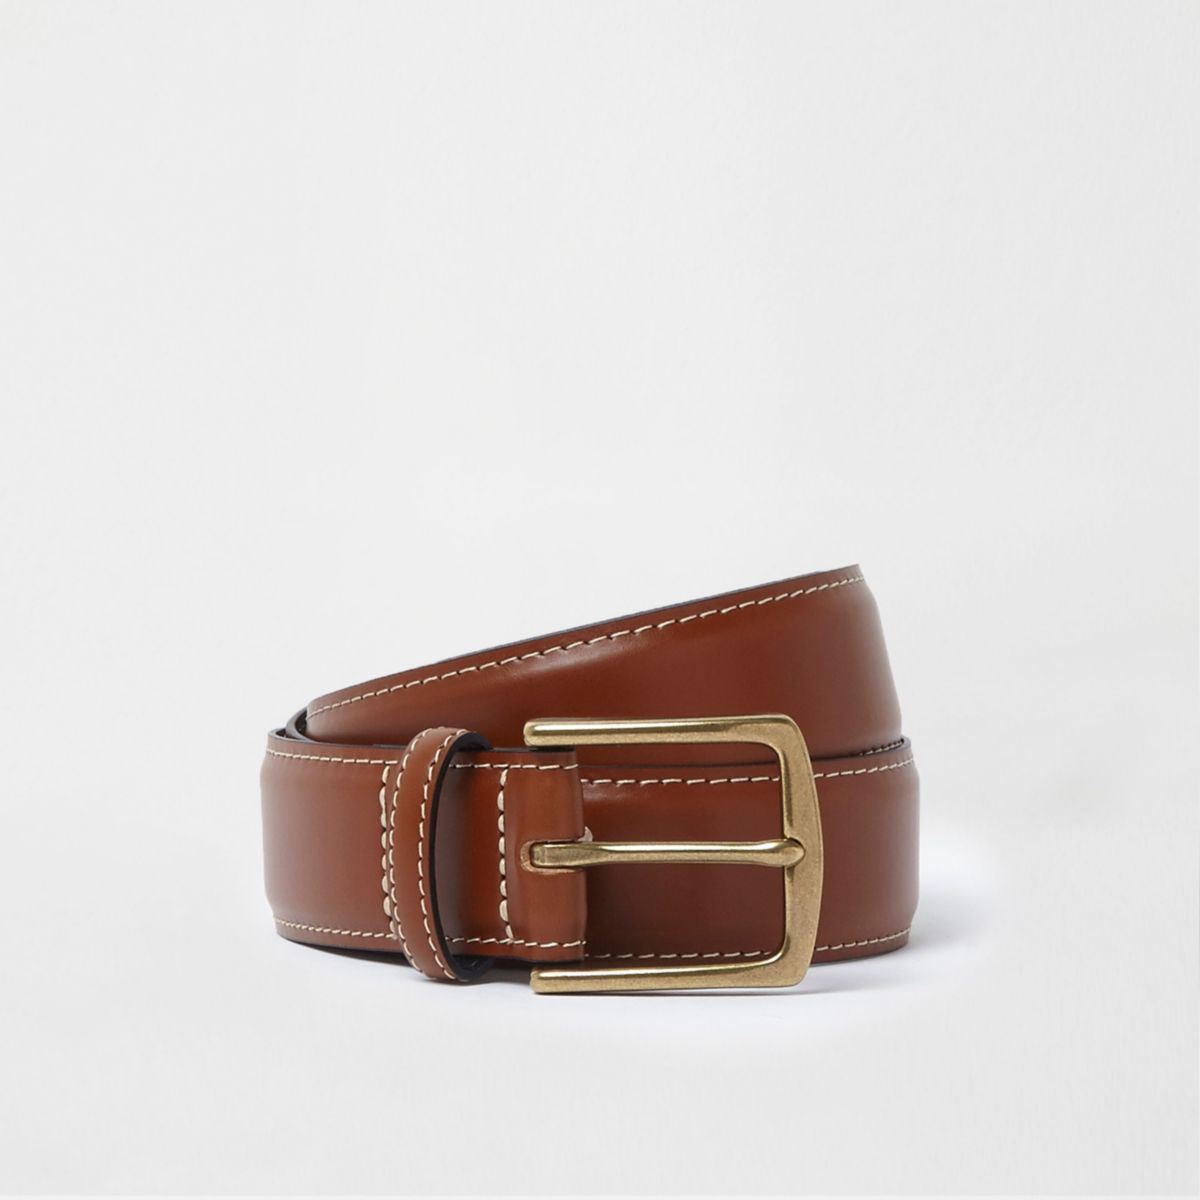 Tan brown leather buckle belt